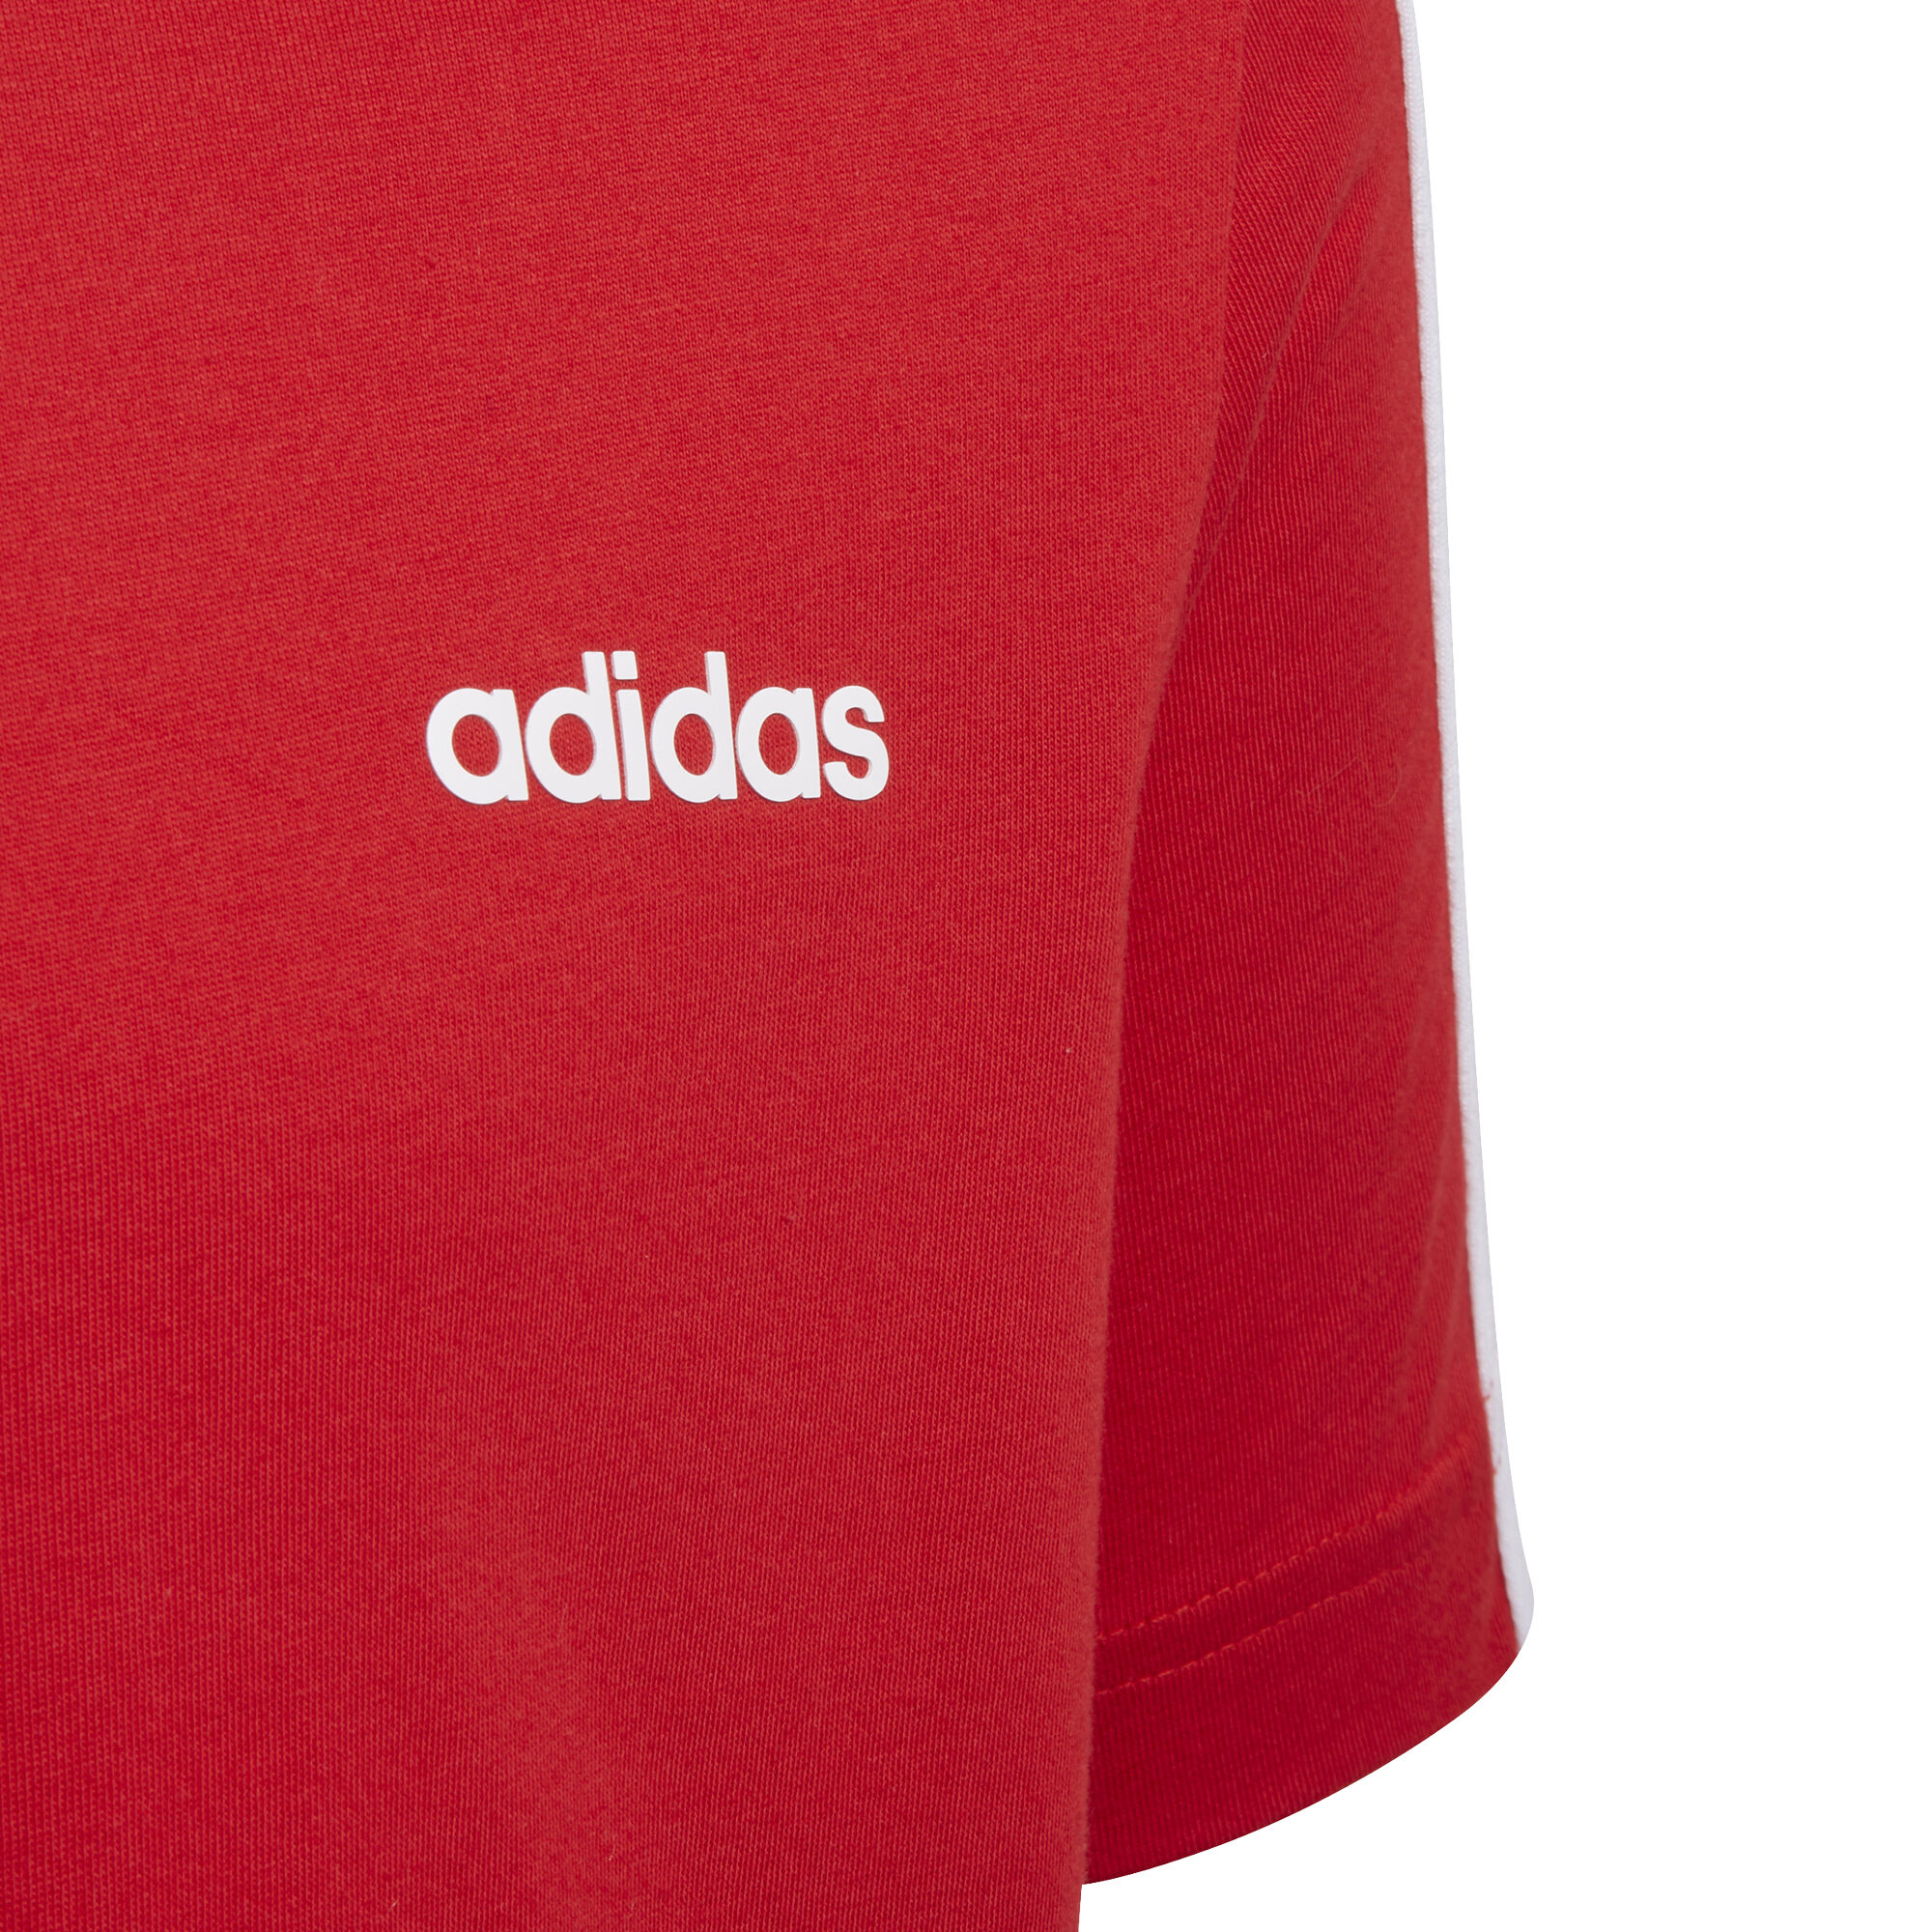 adidas Essentials 3 Stripes T shirt Garçons Rouge , Blanc